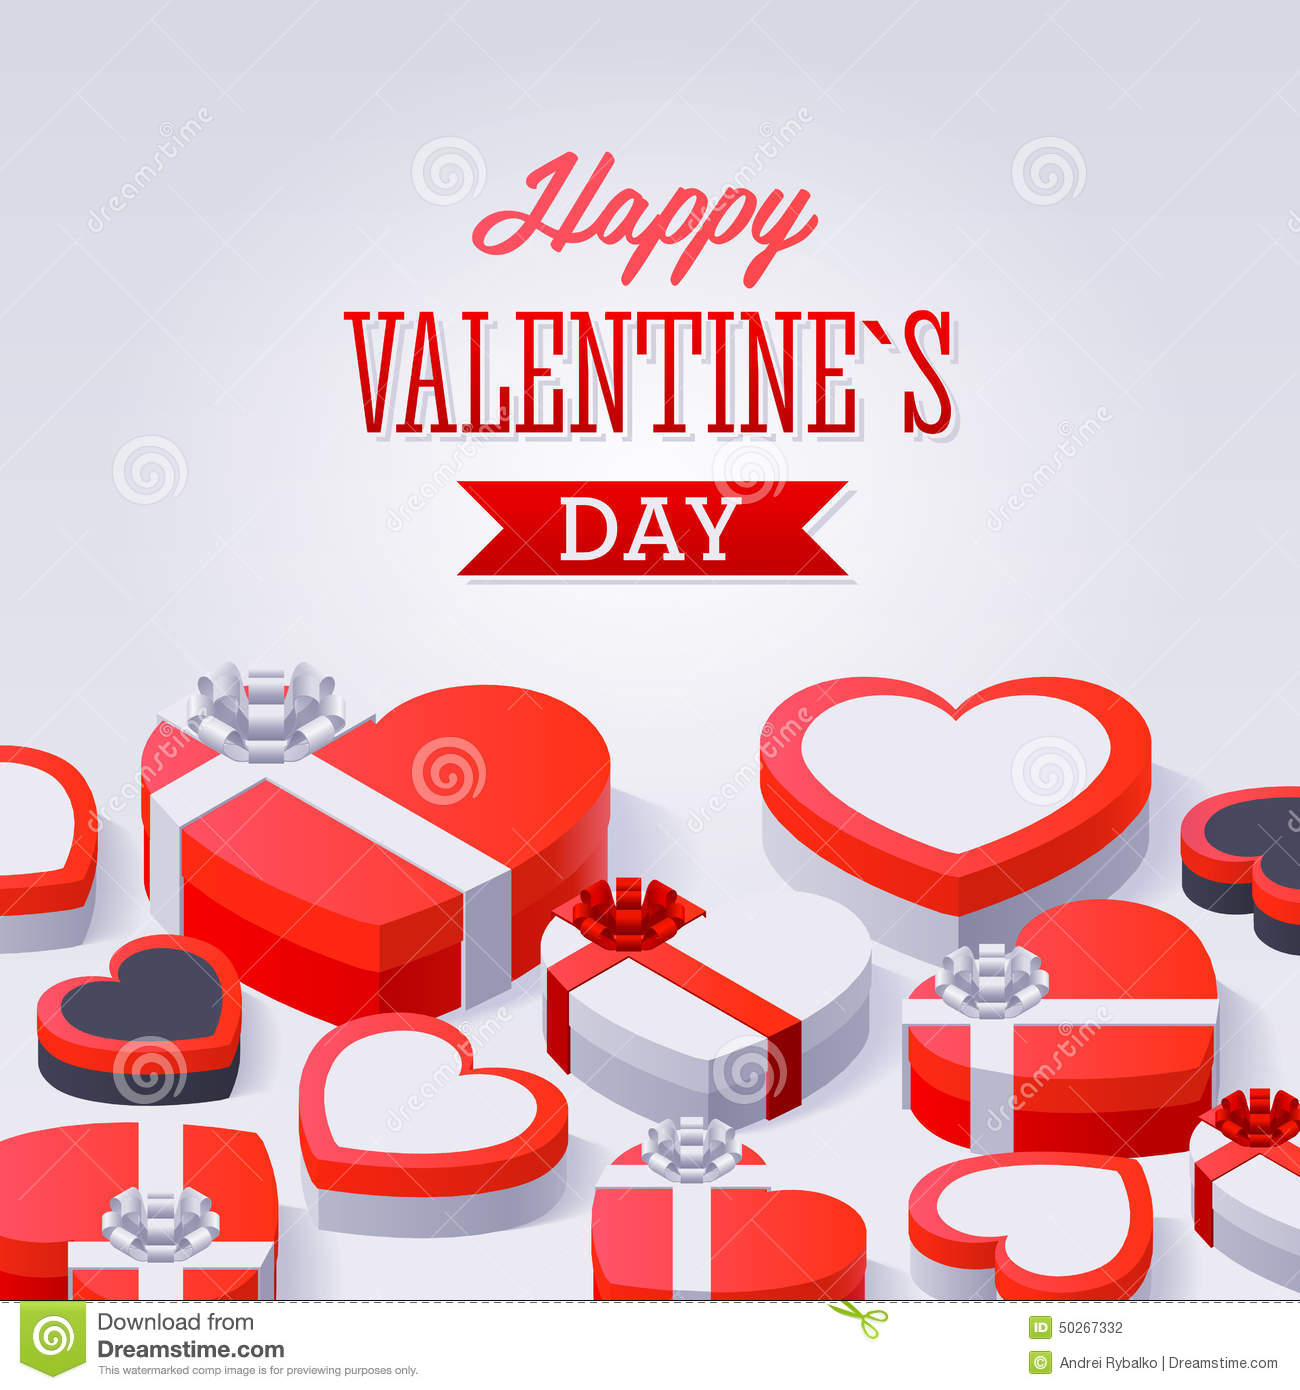 Valentines Day Gift Boxes Stock Vector Illustration Of Card 50267332